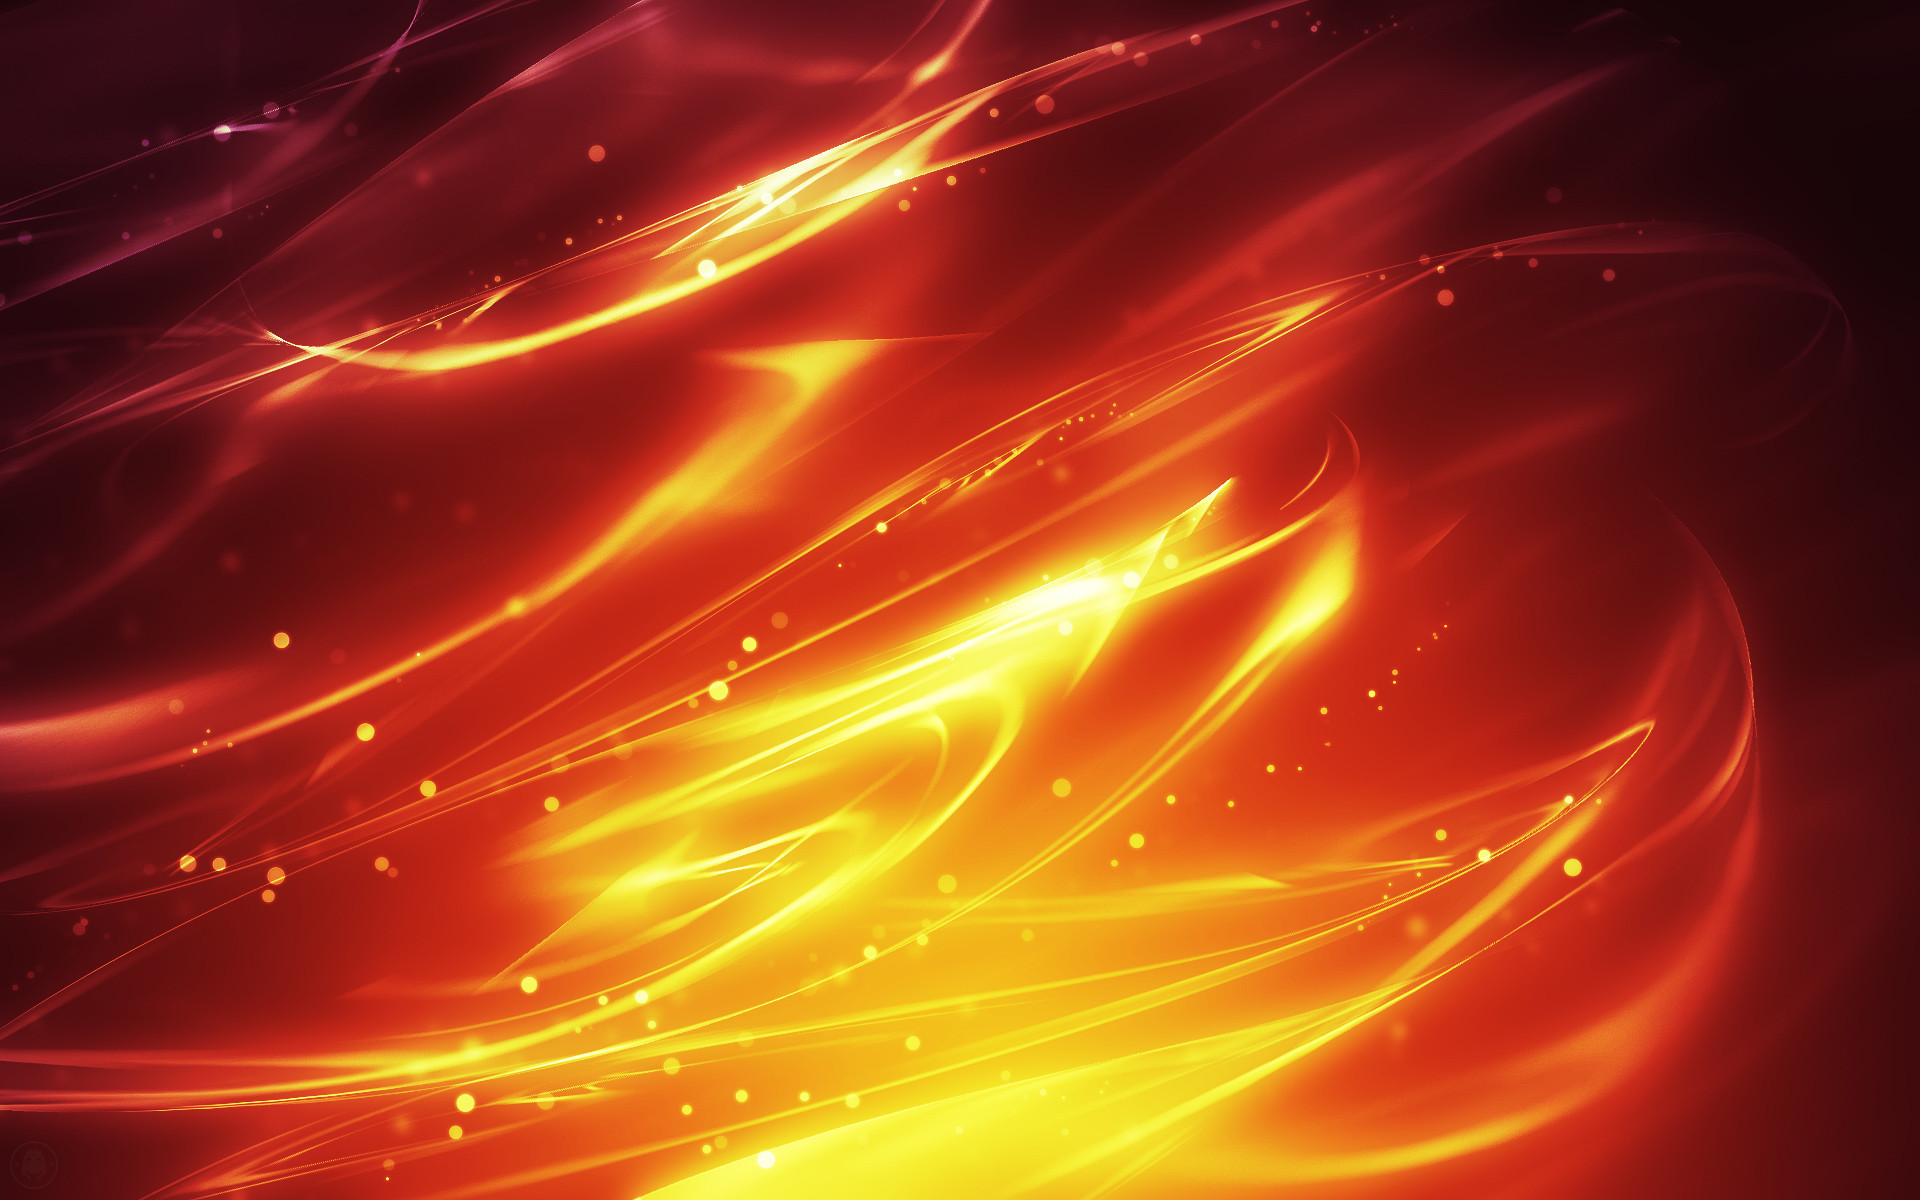 Free Backrounds cool awesome backgrounds (60+ images)